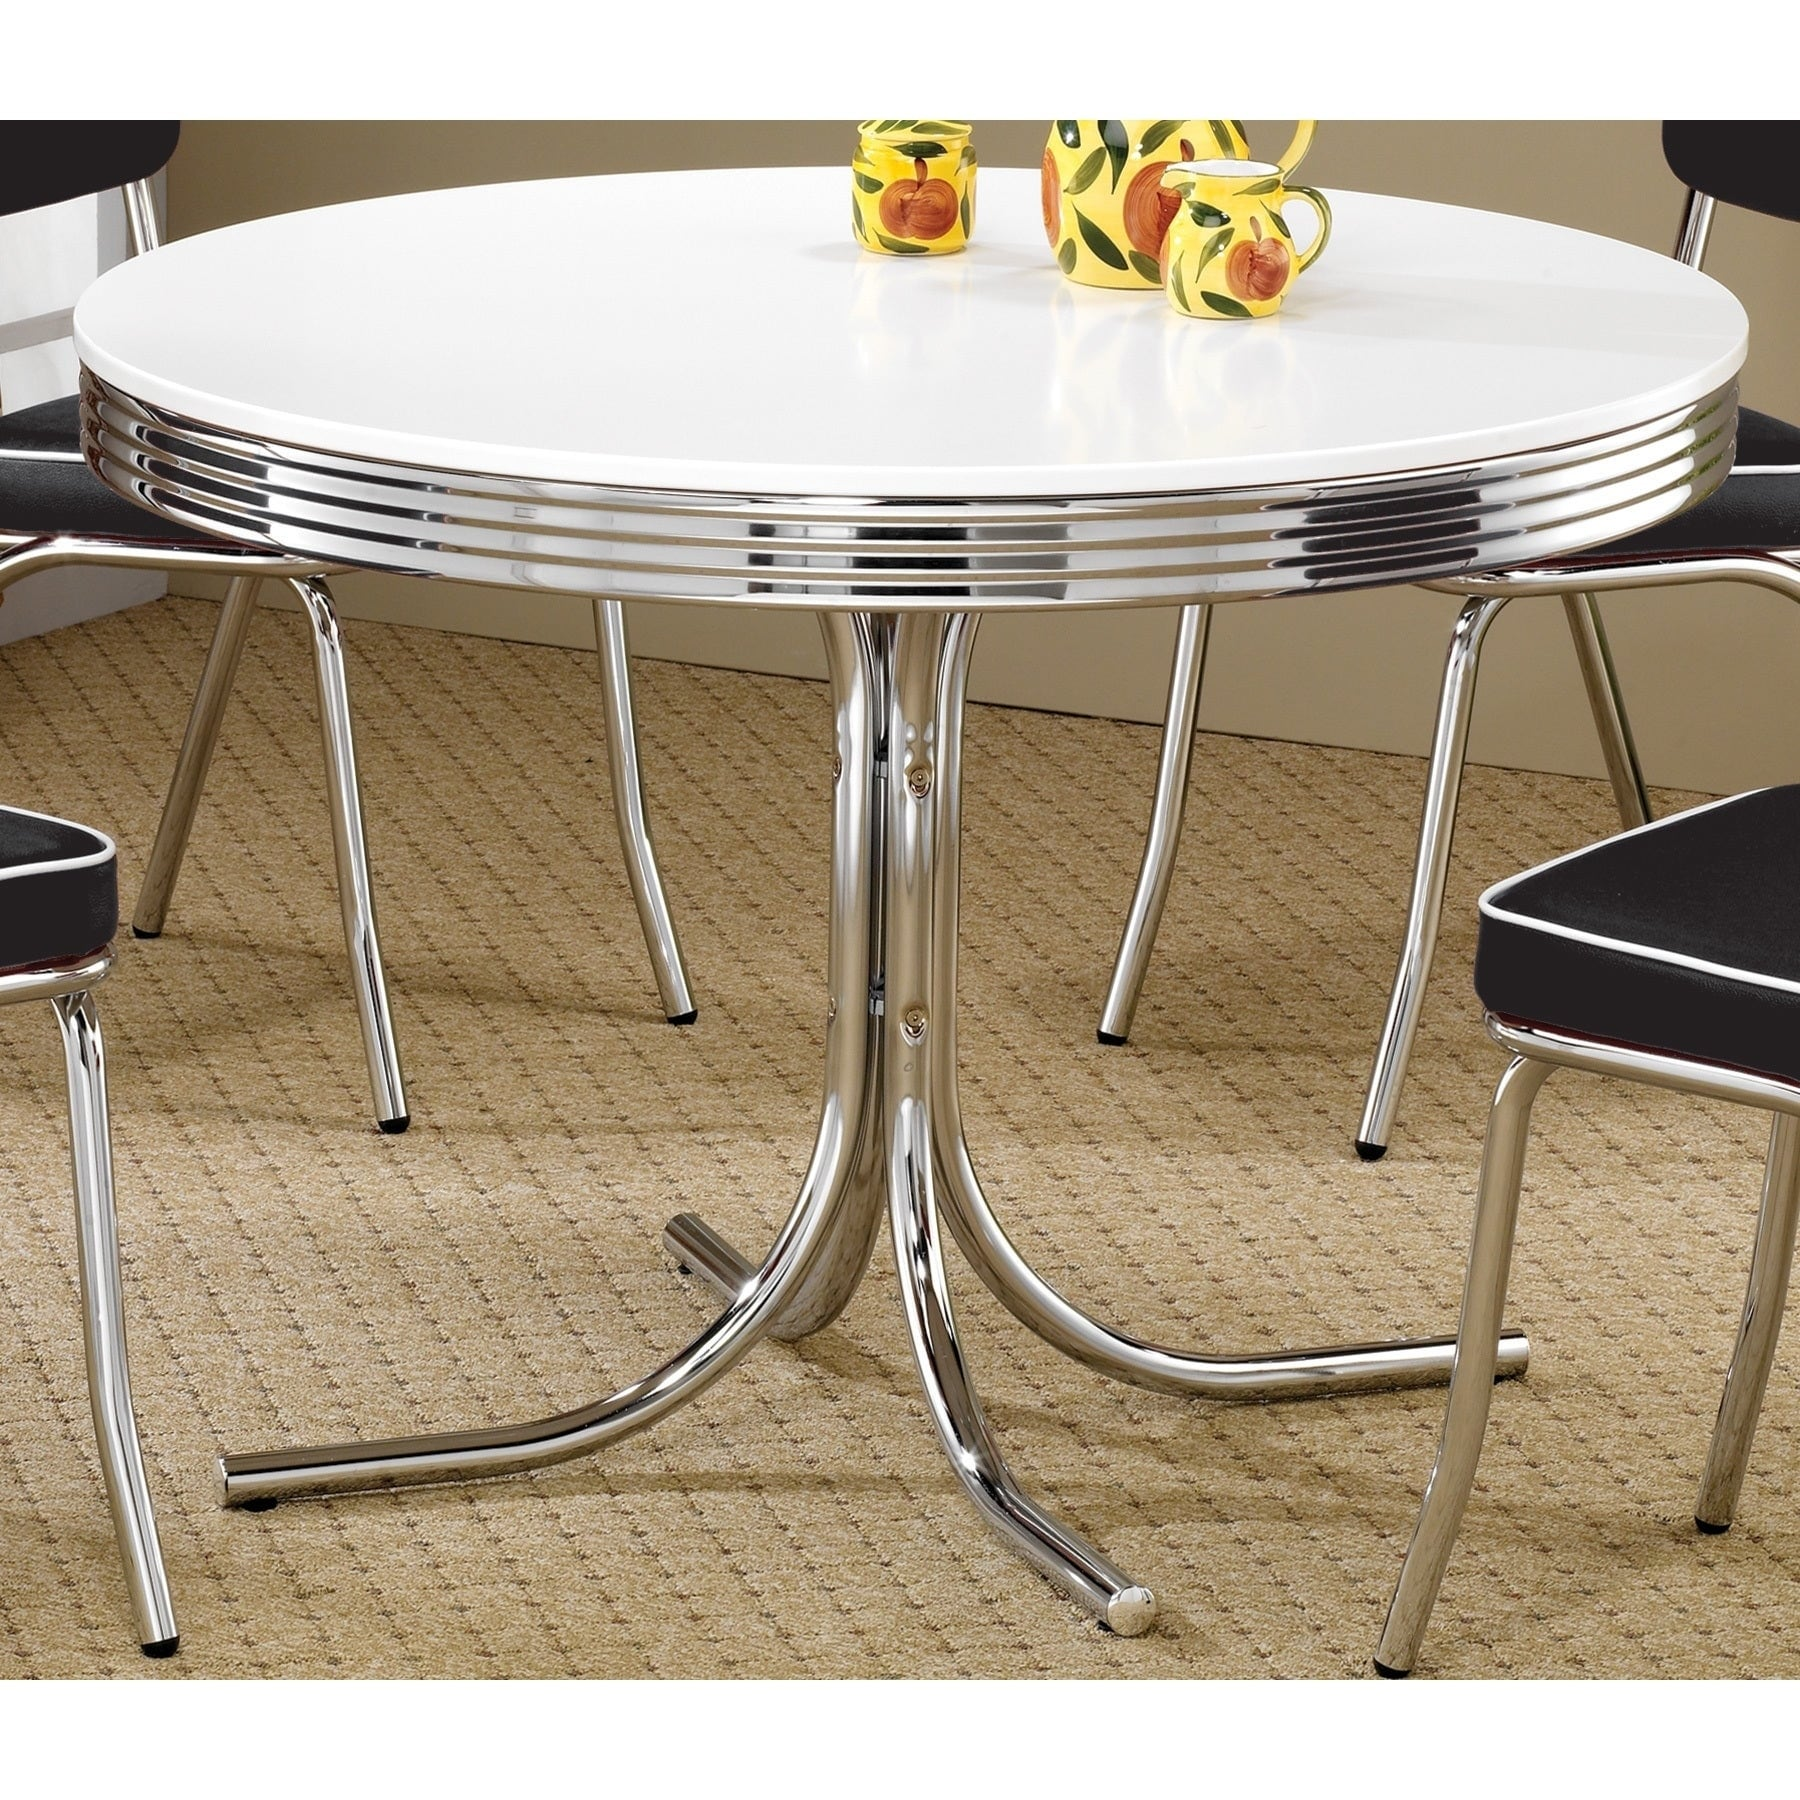 Coaster Furniture White/ Chrome Plated Metal Round Retro ...